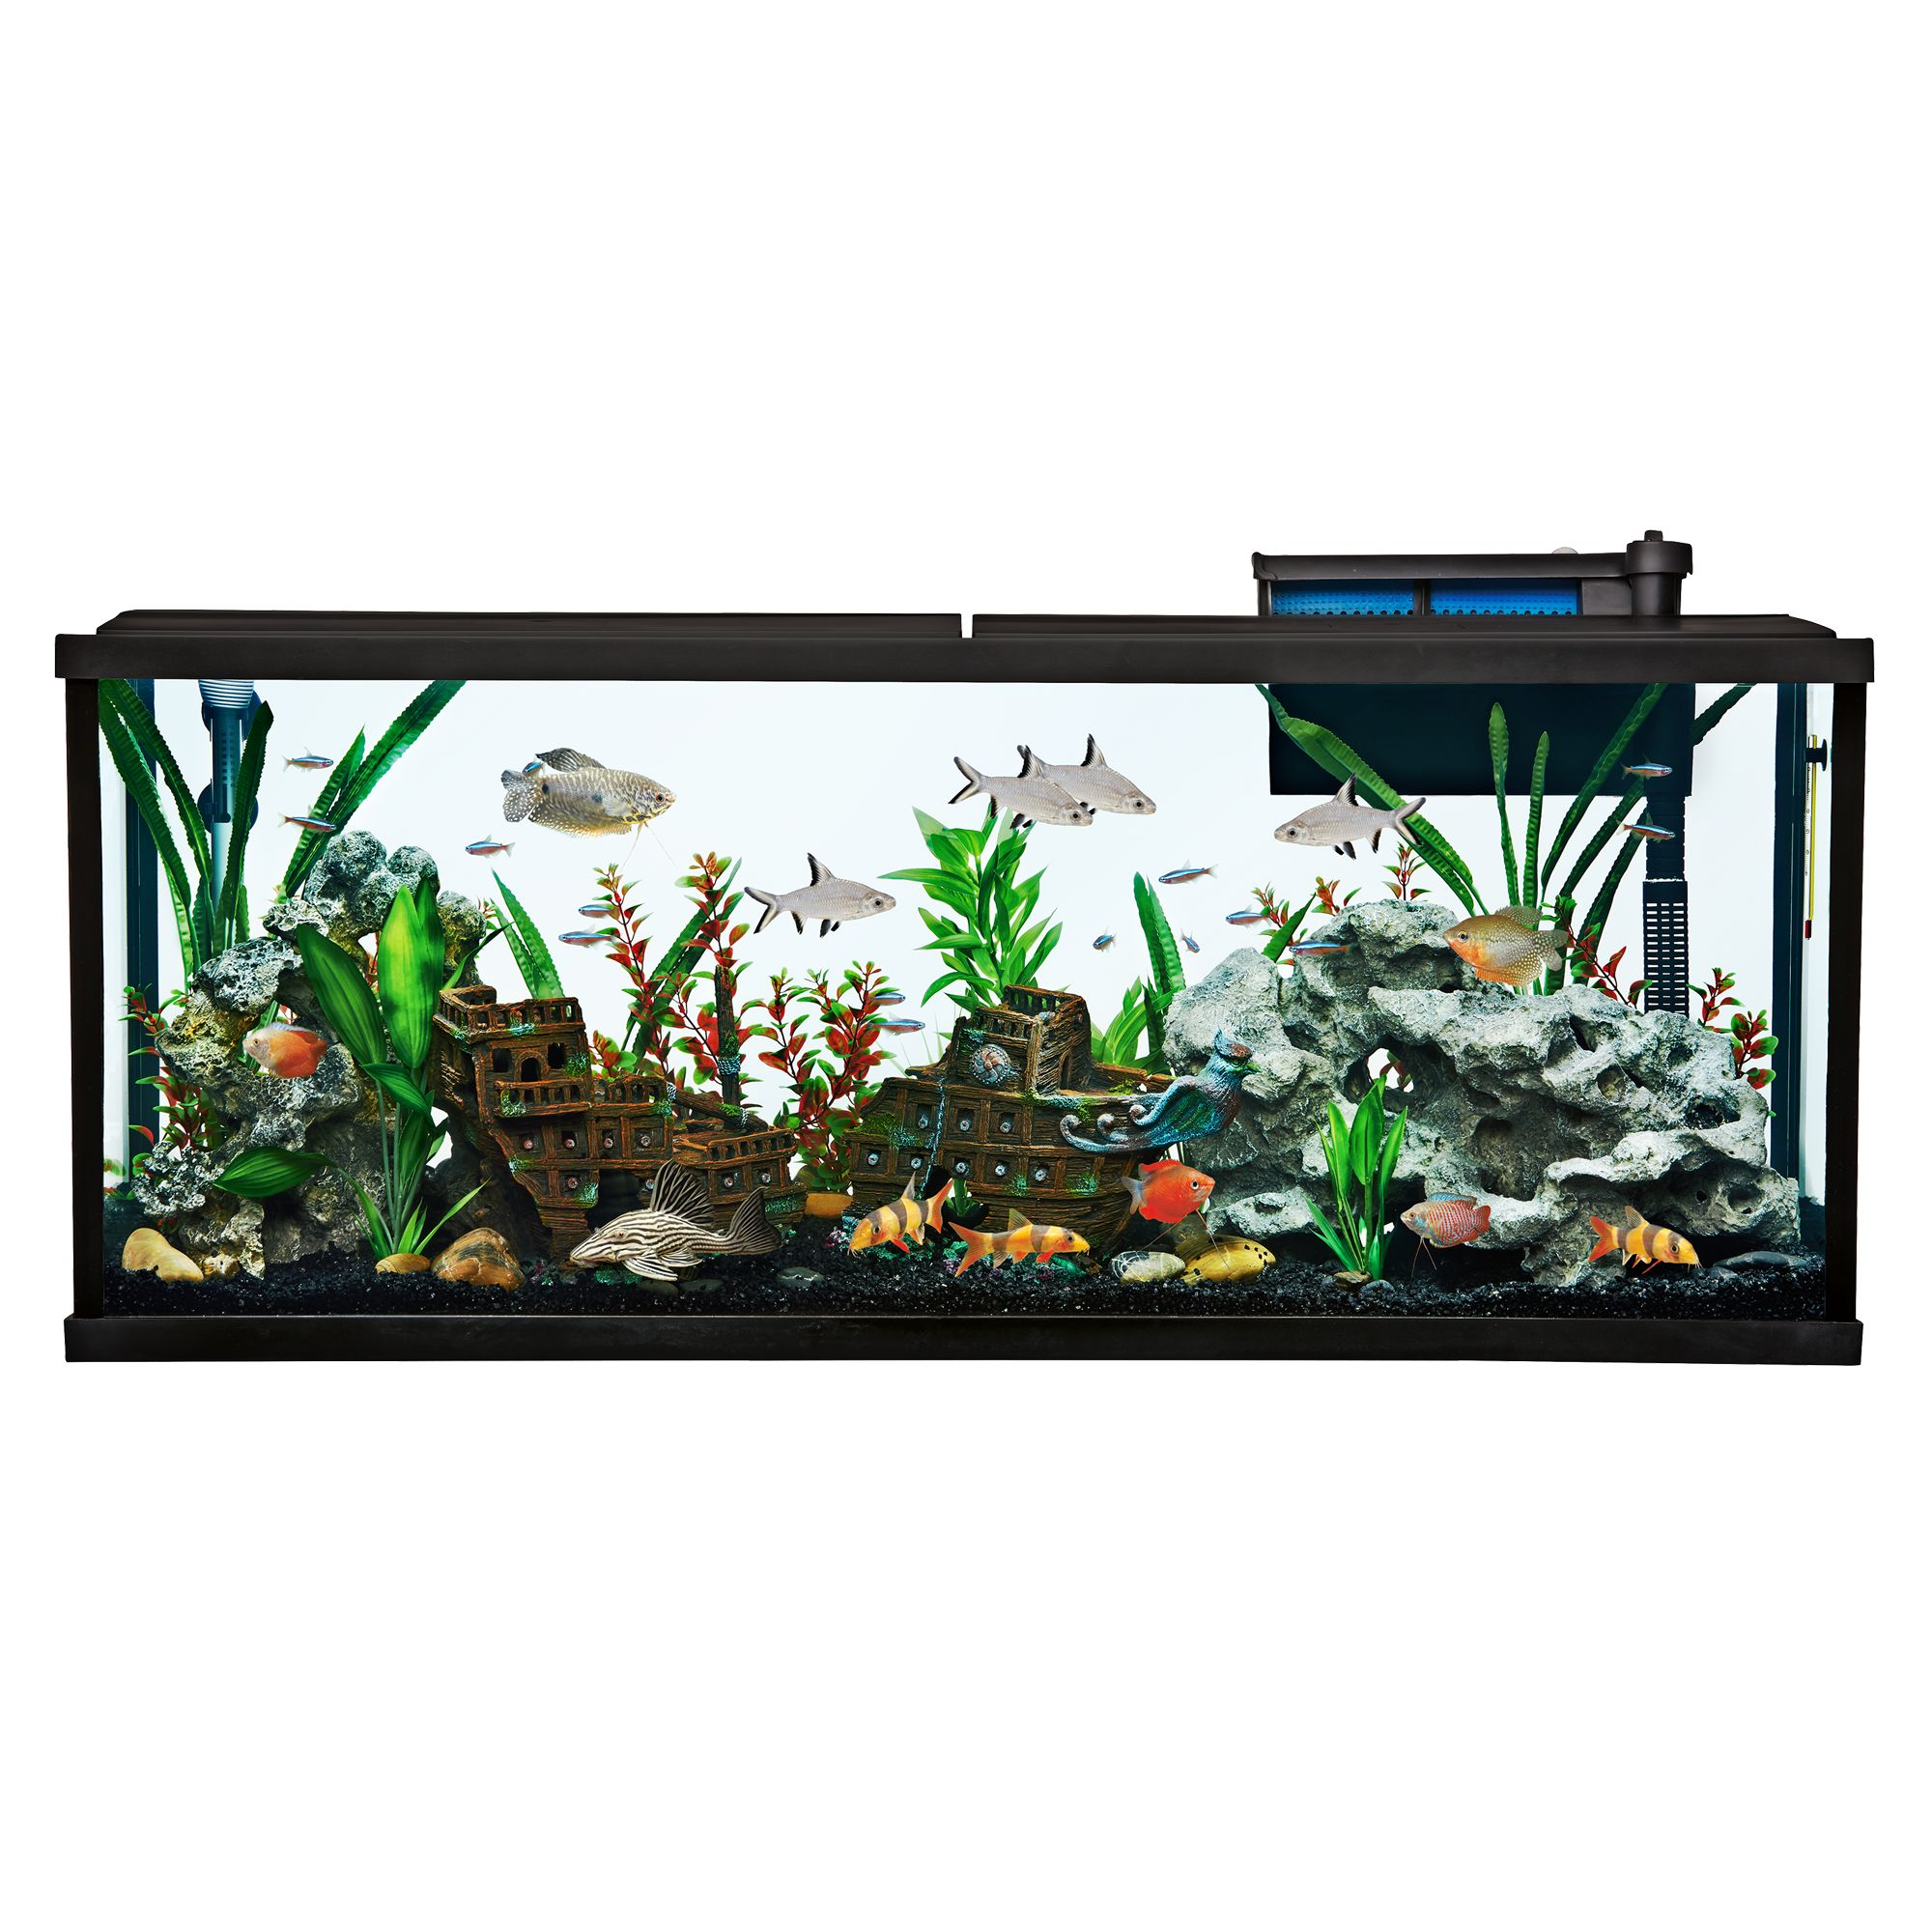 Top Finreg 55 Gallon Aquarium Starter Kit size 55 Gal